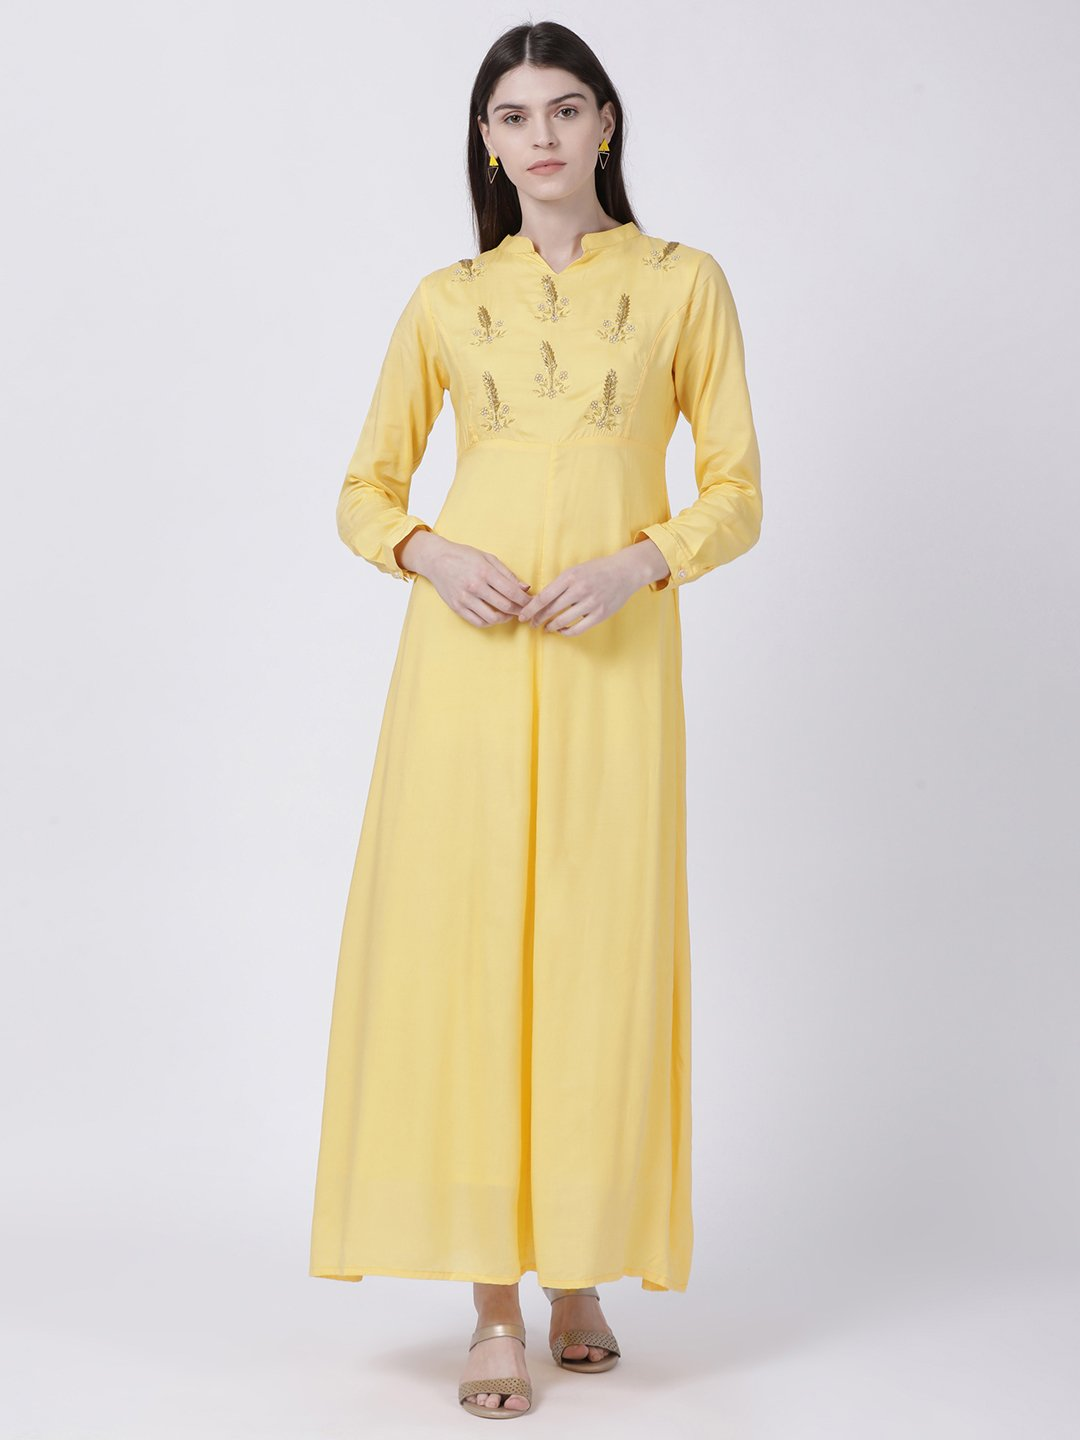 PRINCESS CUT YELLOW DRESS WITH CONTRAST CUFF AND NECK